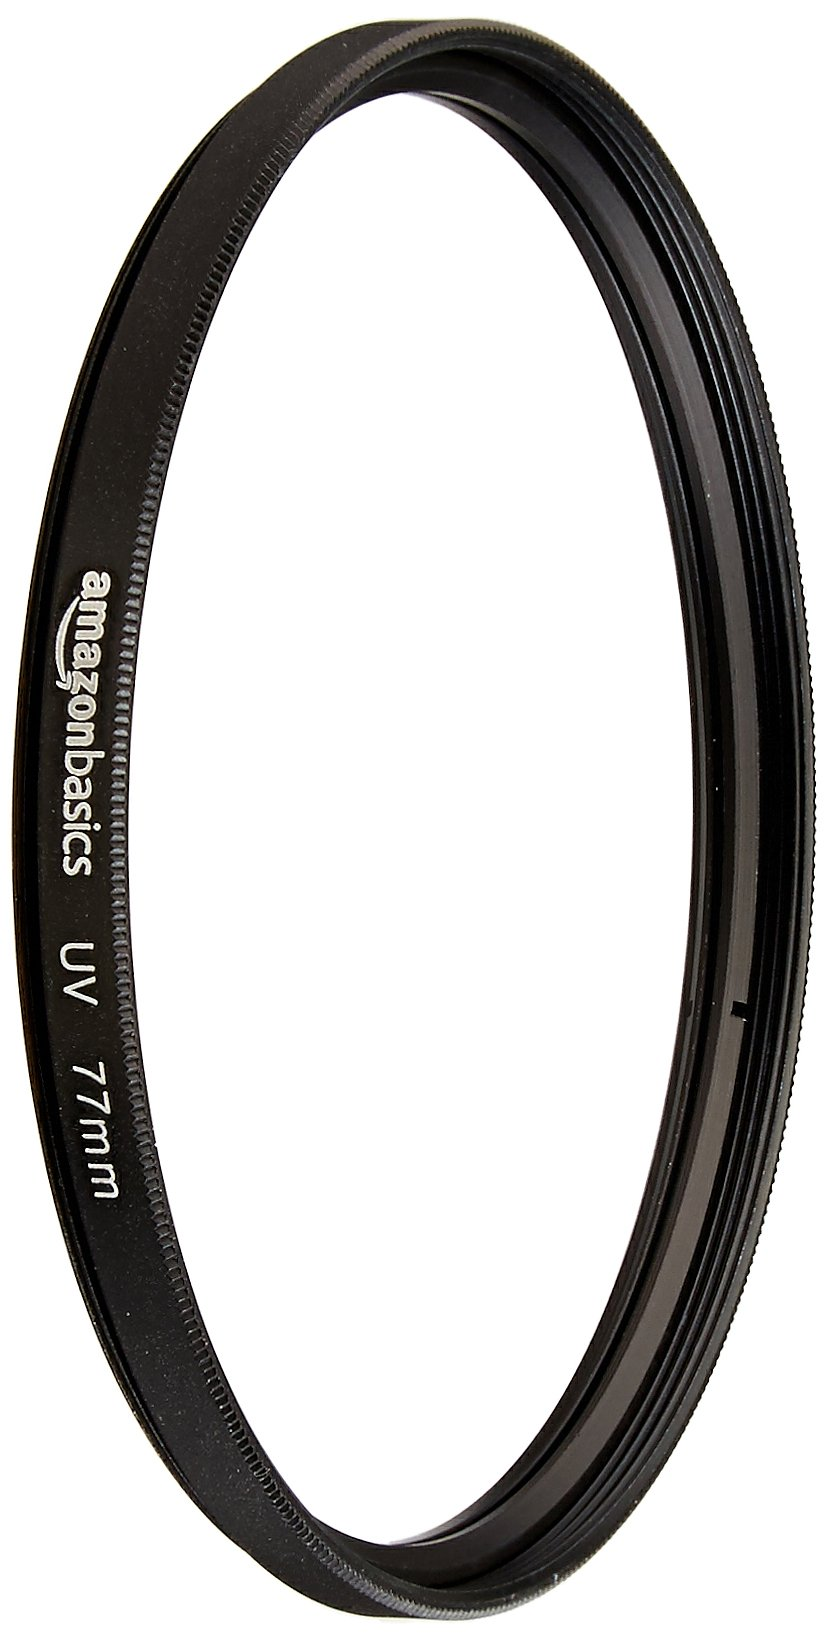 AmazonBasics UV Protection Lens Filter - 77 mm by AmazonBasics